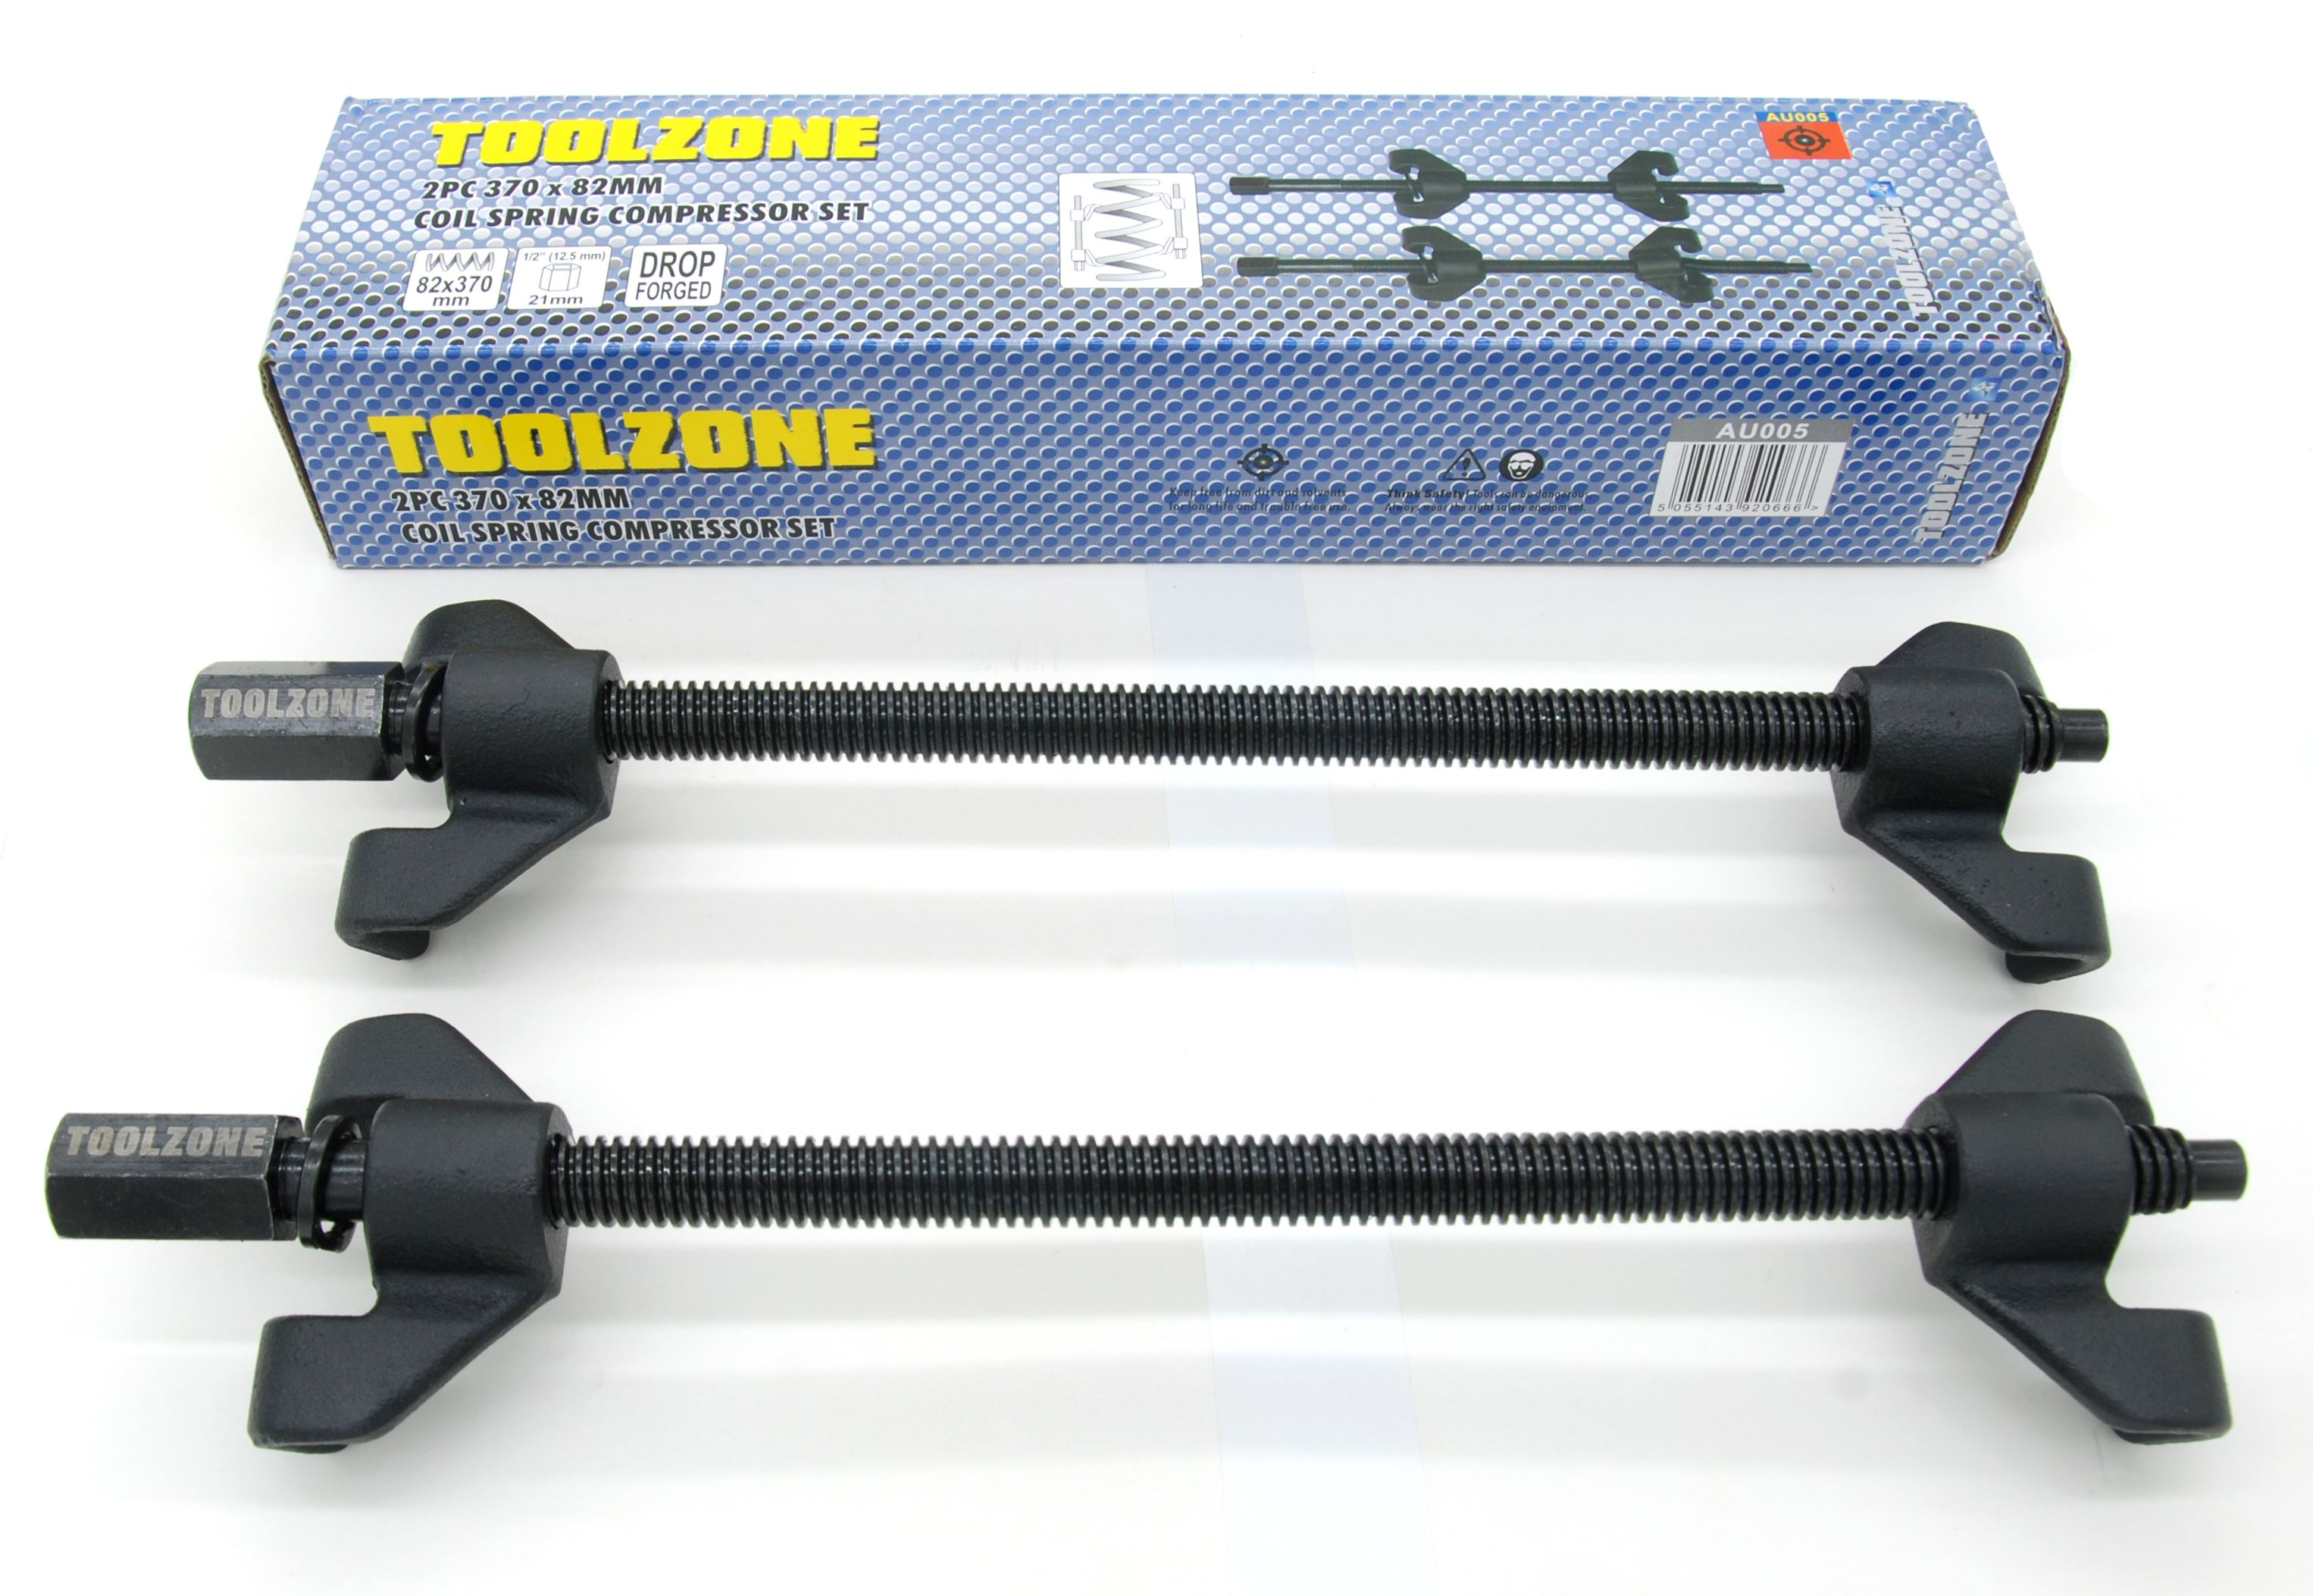 Toolzone 2Pc 370X82mm Coil Spring Compressor